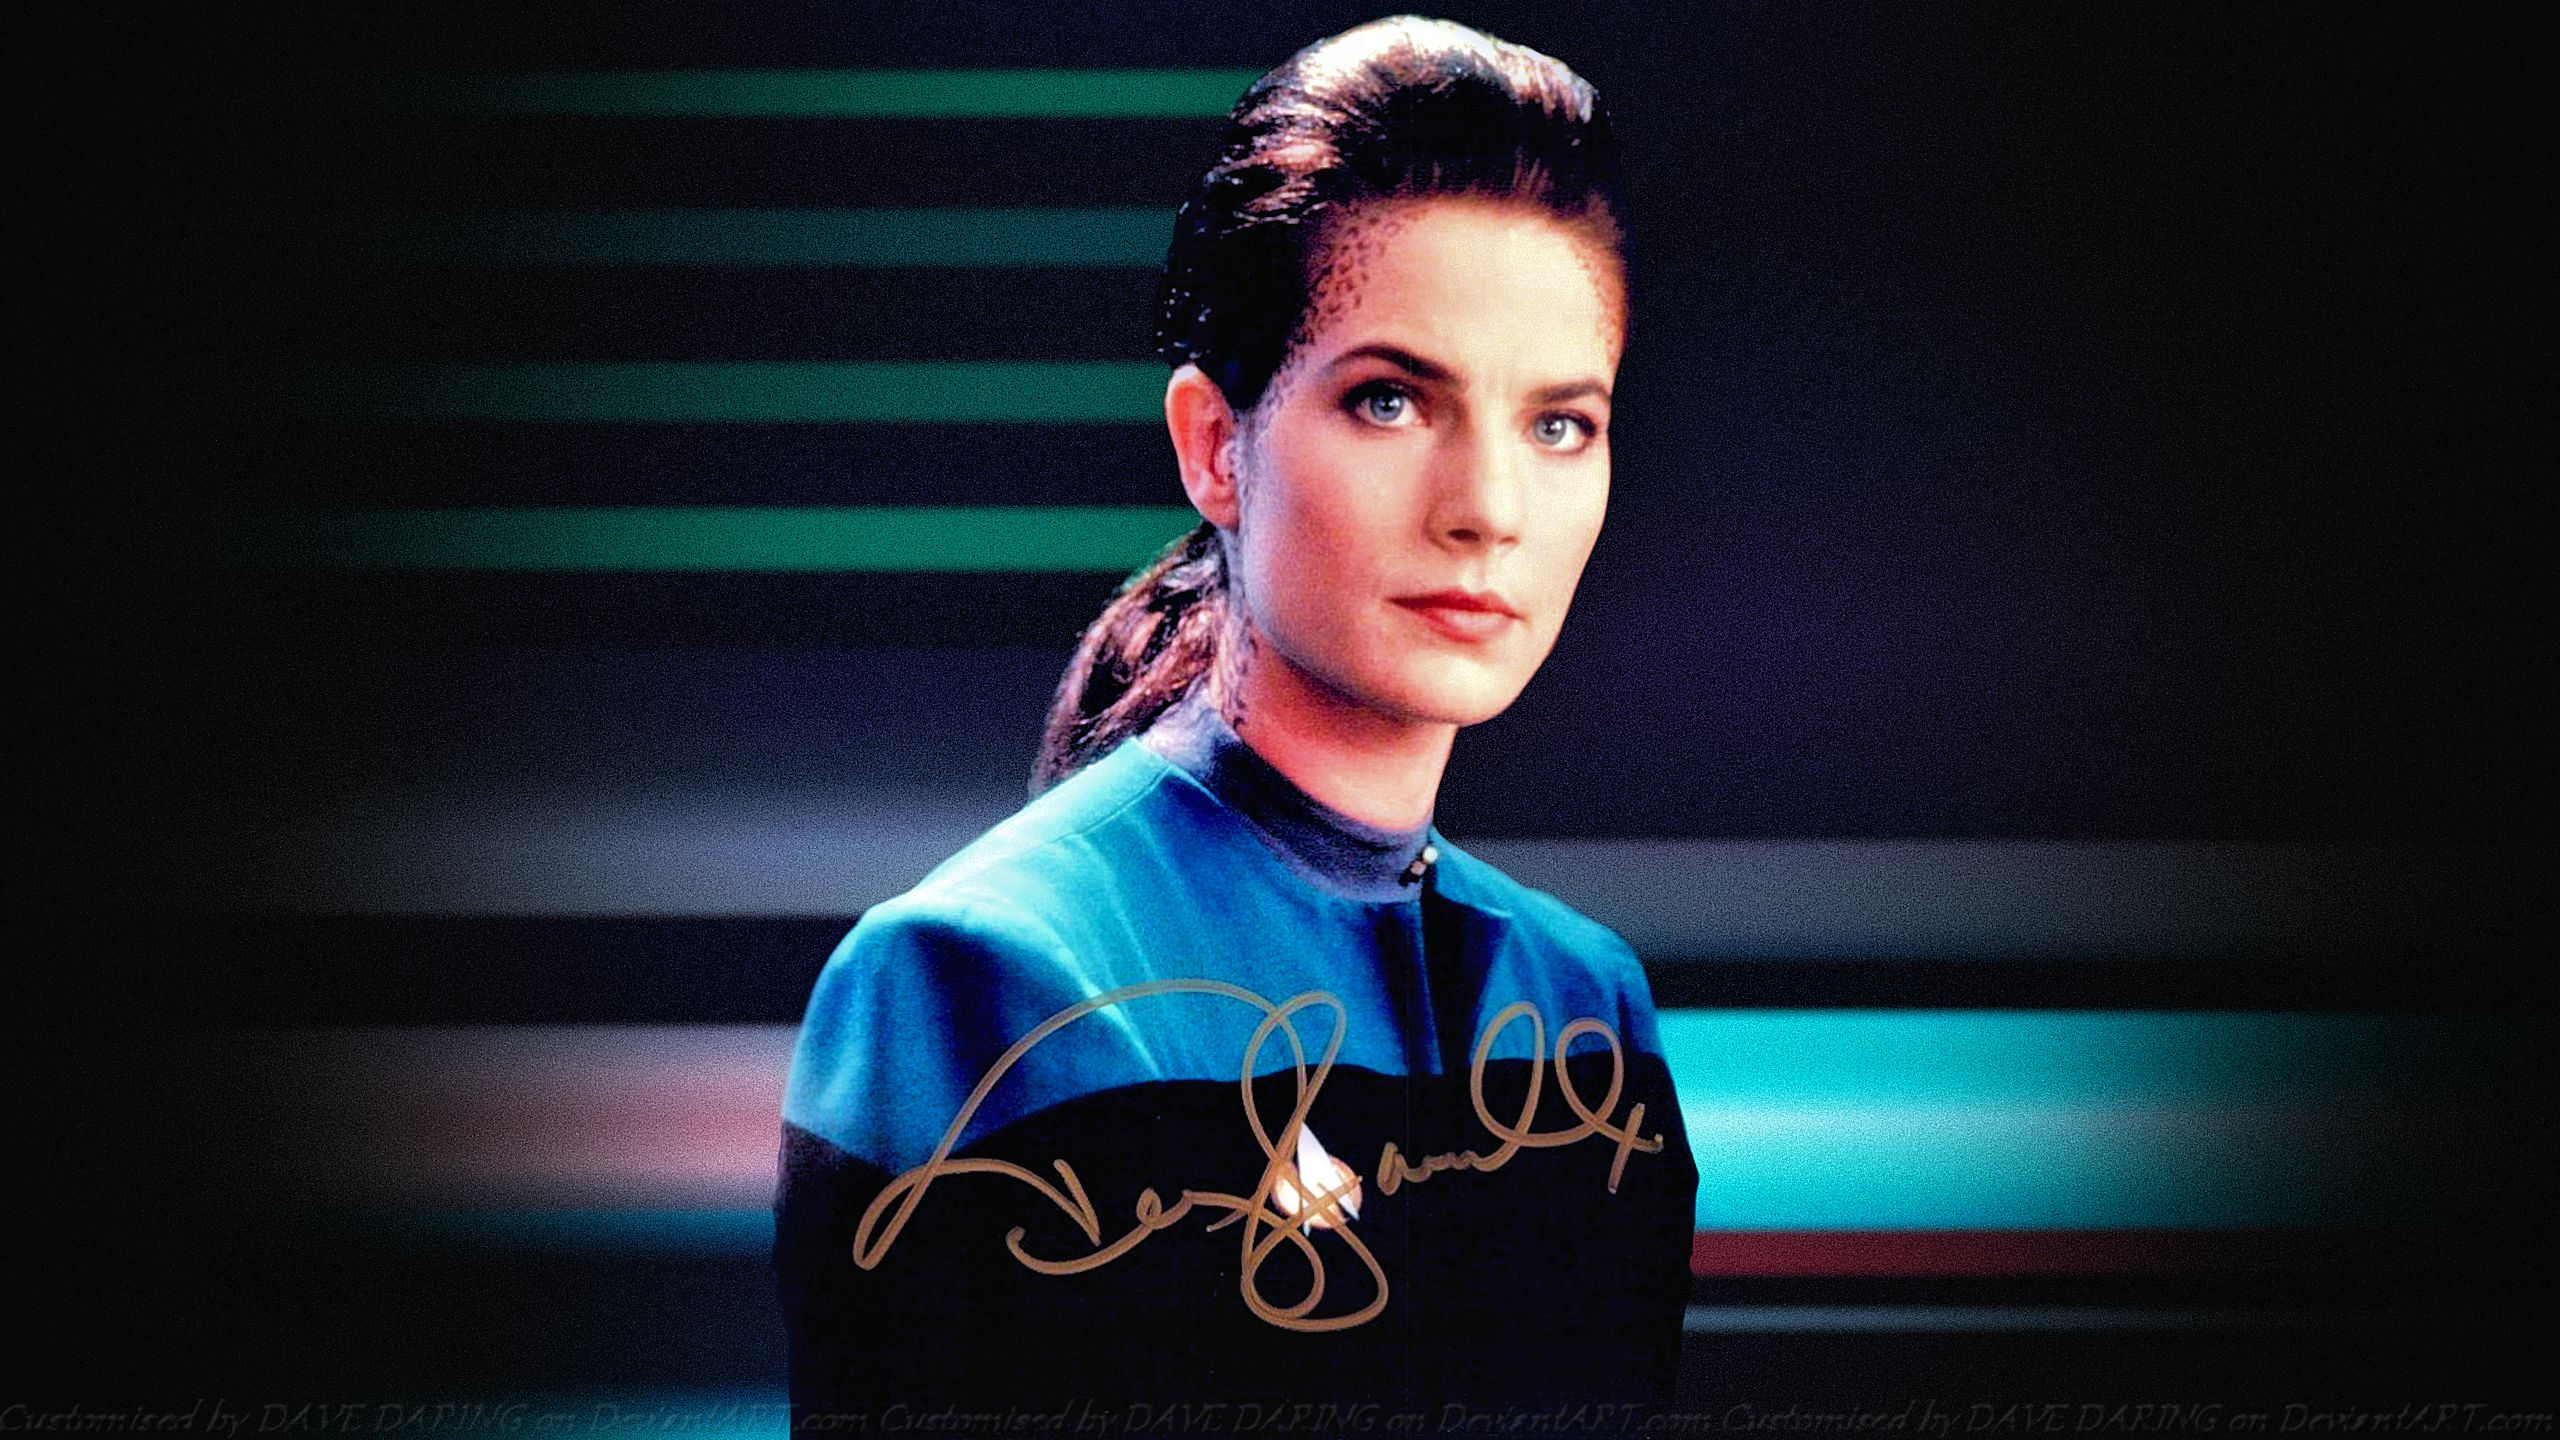 terry farrell fundterry farrell architect, terry farrell model, terry farrell hot photos, terry farrell autograph, terry farrell & partners, terry farrell architecture, terry farrell, terry farrell 2015, terry farrell deep space nine, terry farrell red dwarf, terry farrell michael dorn, terry farrell bikini, terry farrell ds9, terry farrell actress, terry farrell net worth, terry farrell fund, terry farrell hot, terry farrell mla, terry farrell twitter, terry farrell becker